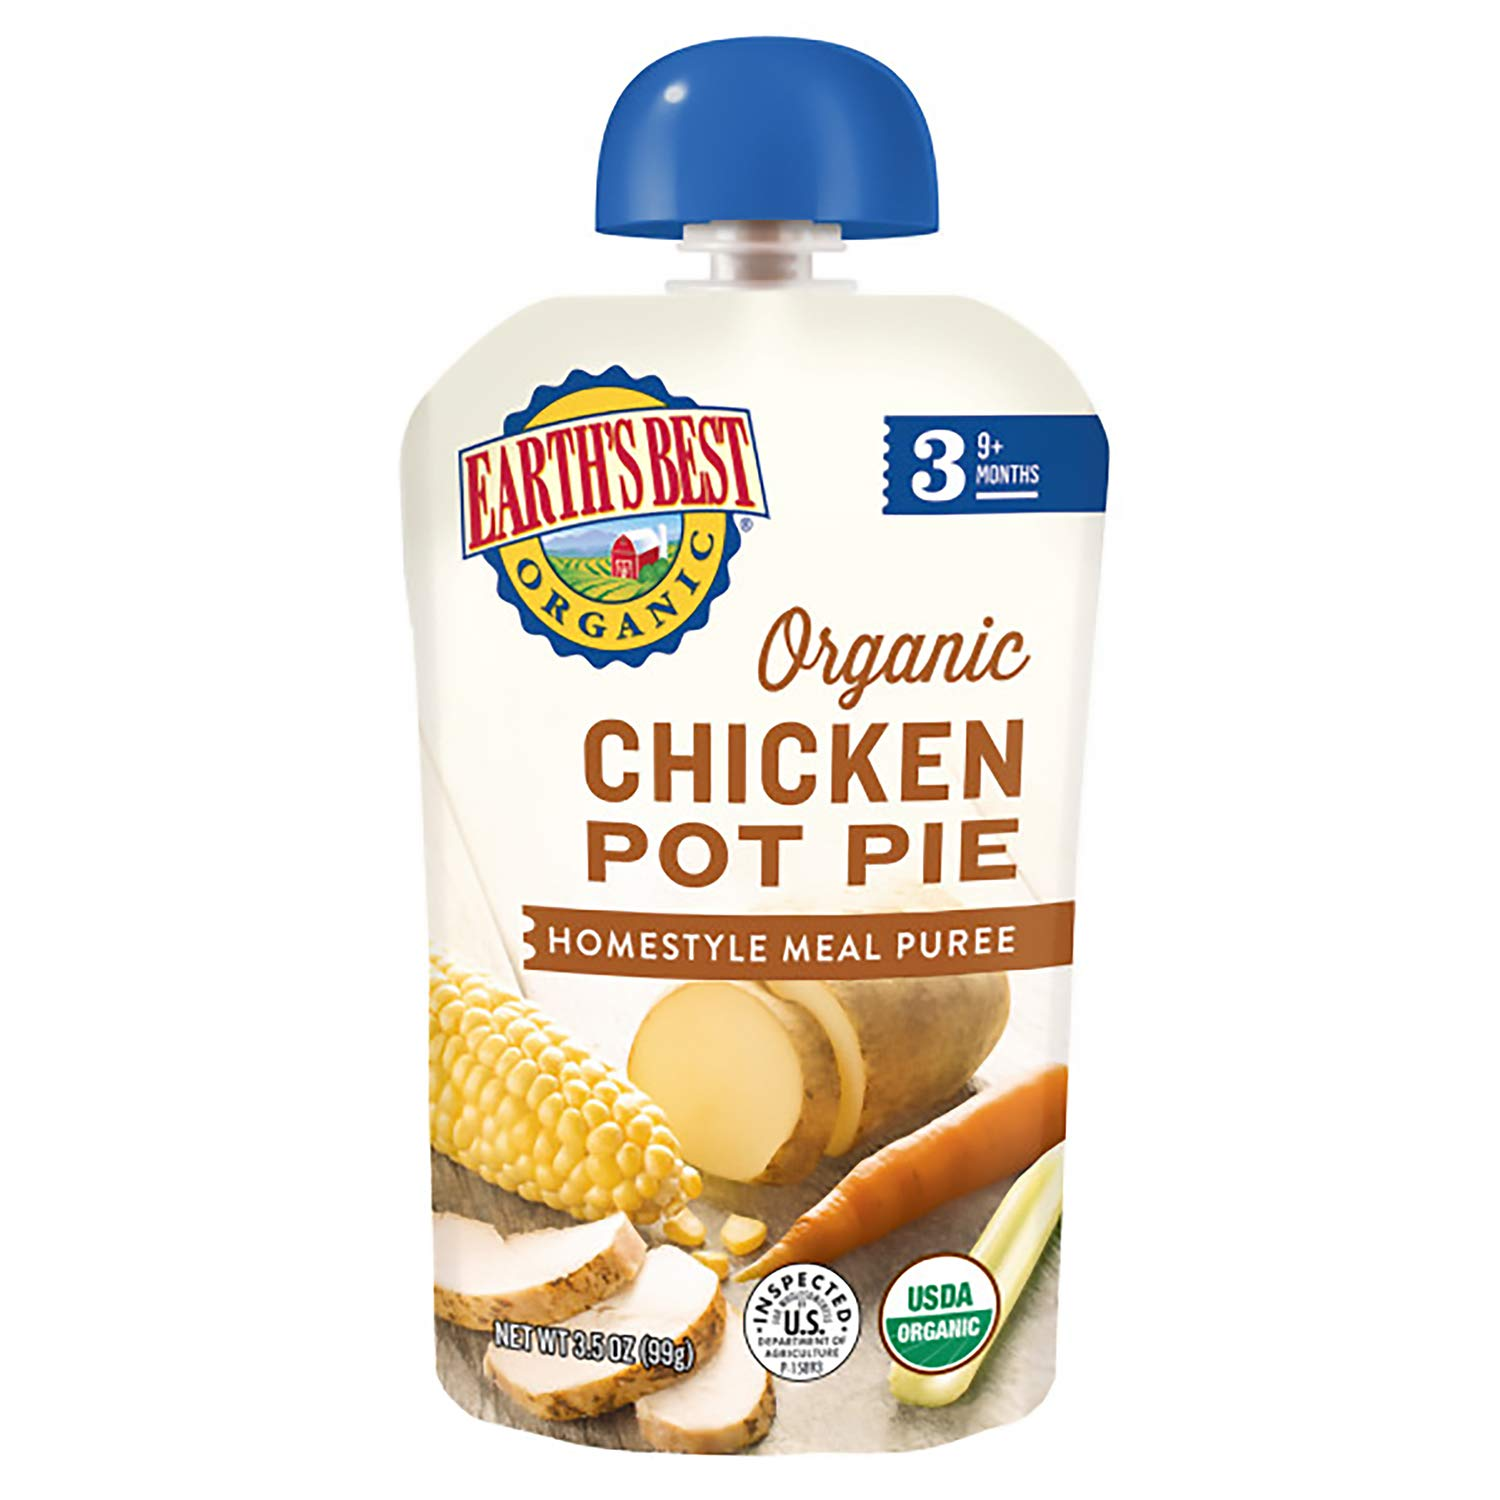 Earth's Best Organic Stage 3 Baby Food, Chicken Pot Pie, 3.5 Oz Pouch (Pack of 6)